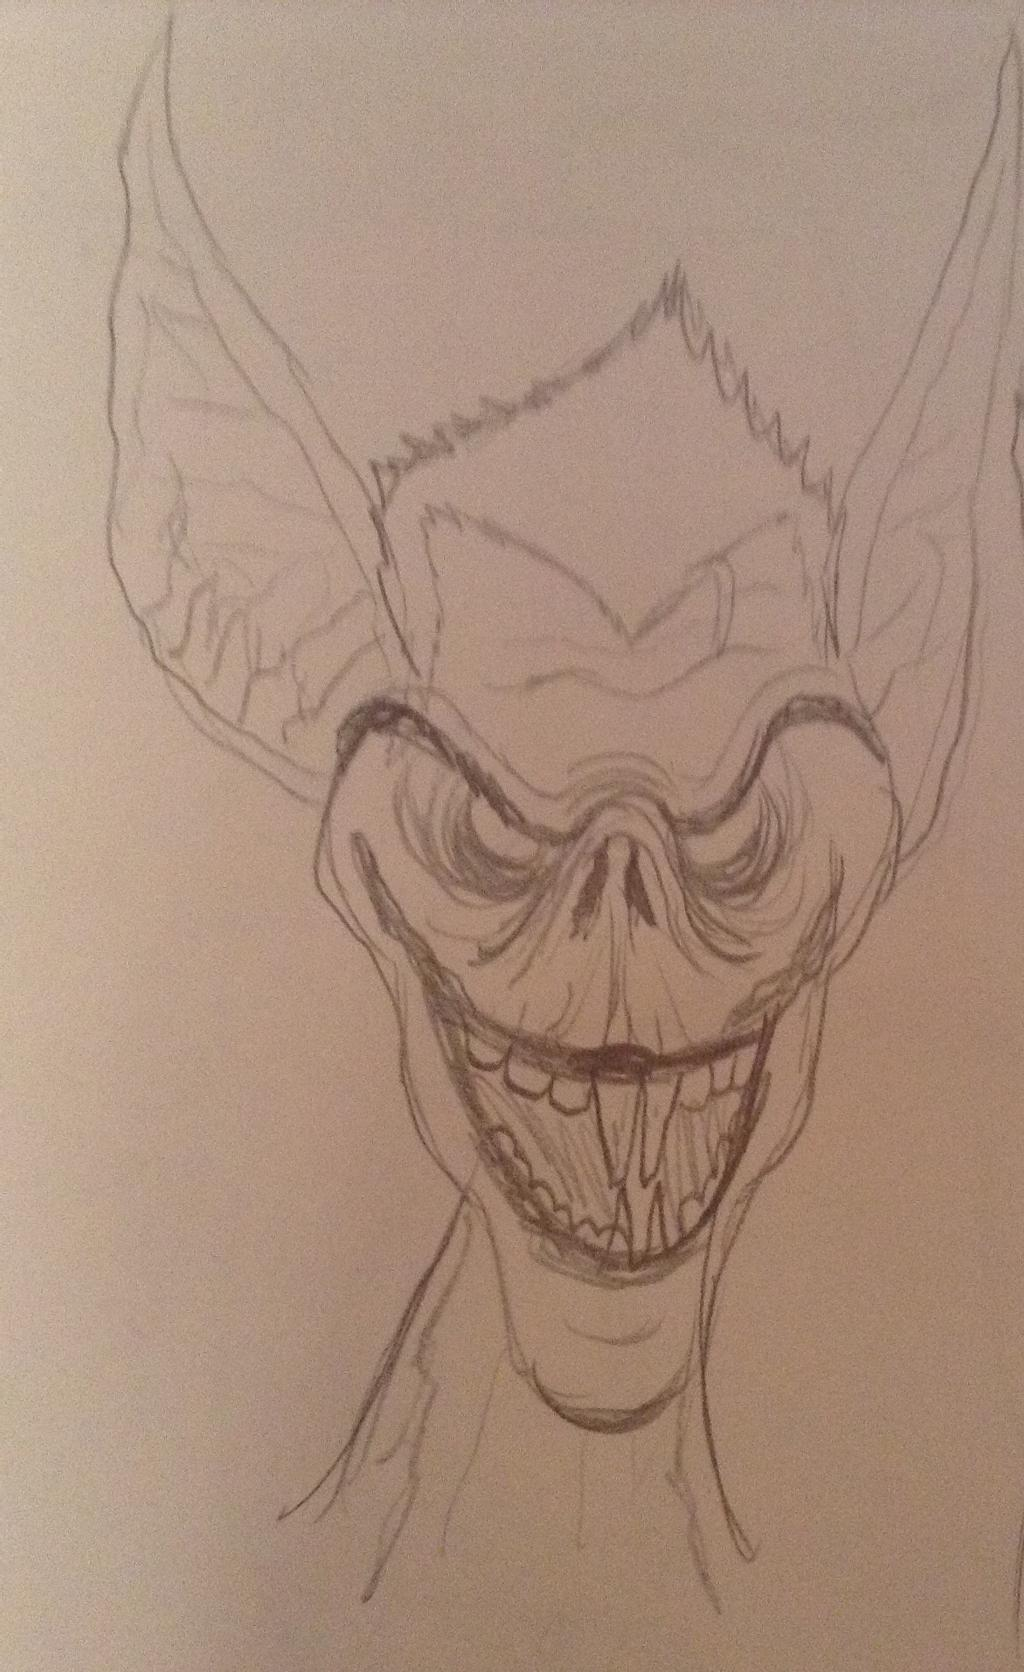 my_version_of_a_arkham_asylum_style_joker_manbat__by_jokerfan79_dccjylb-fullview.jpg